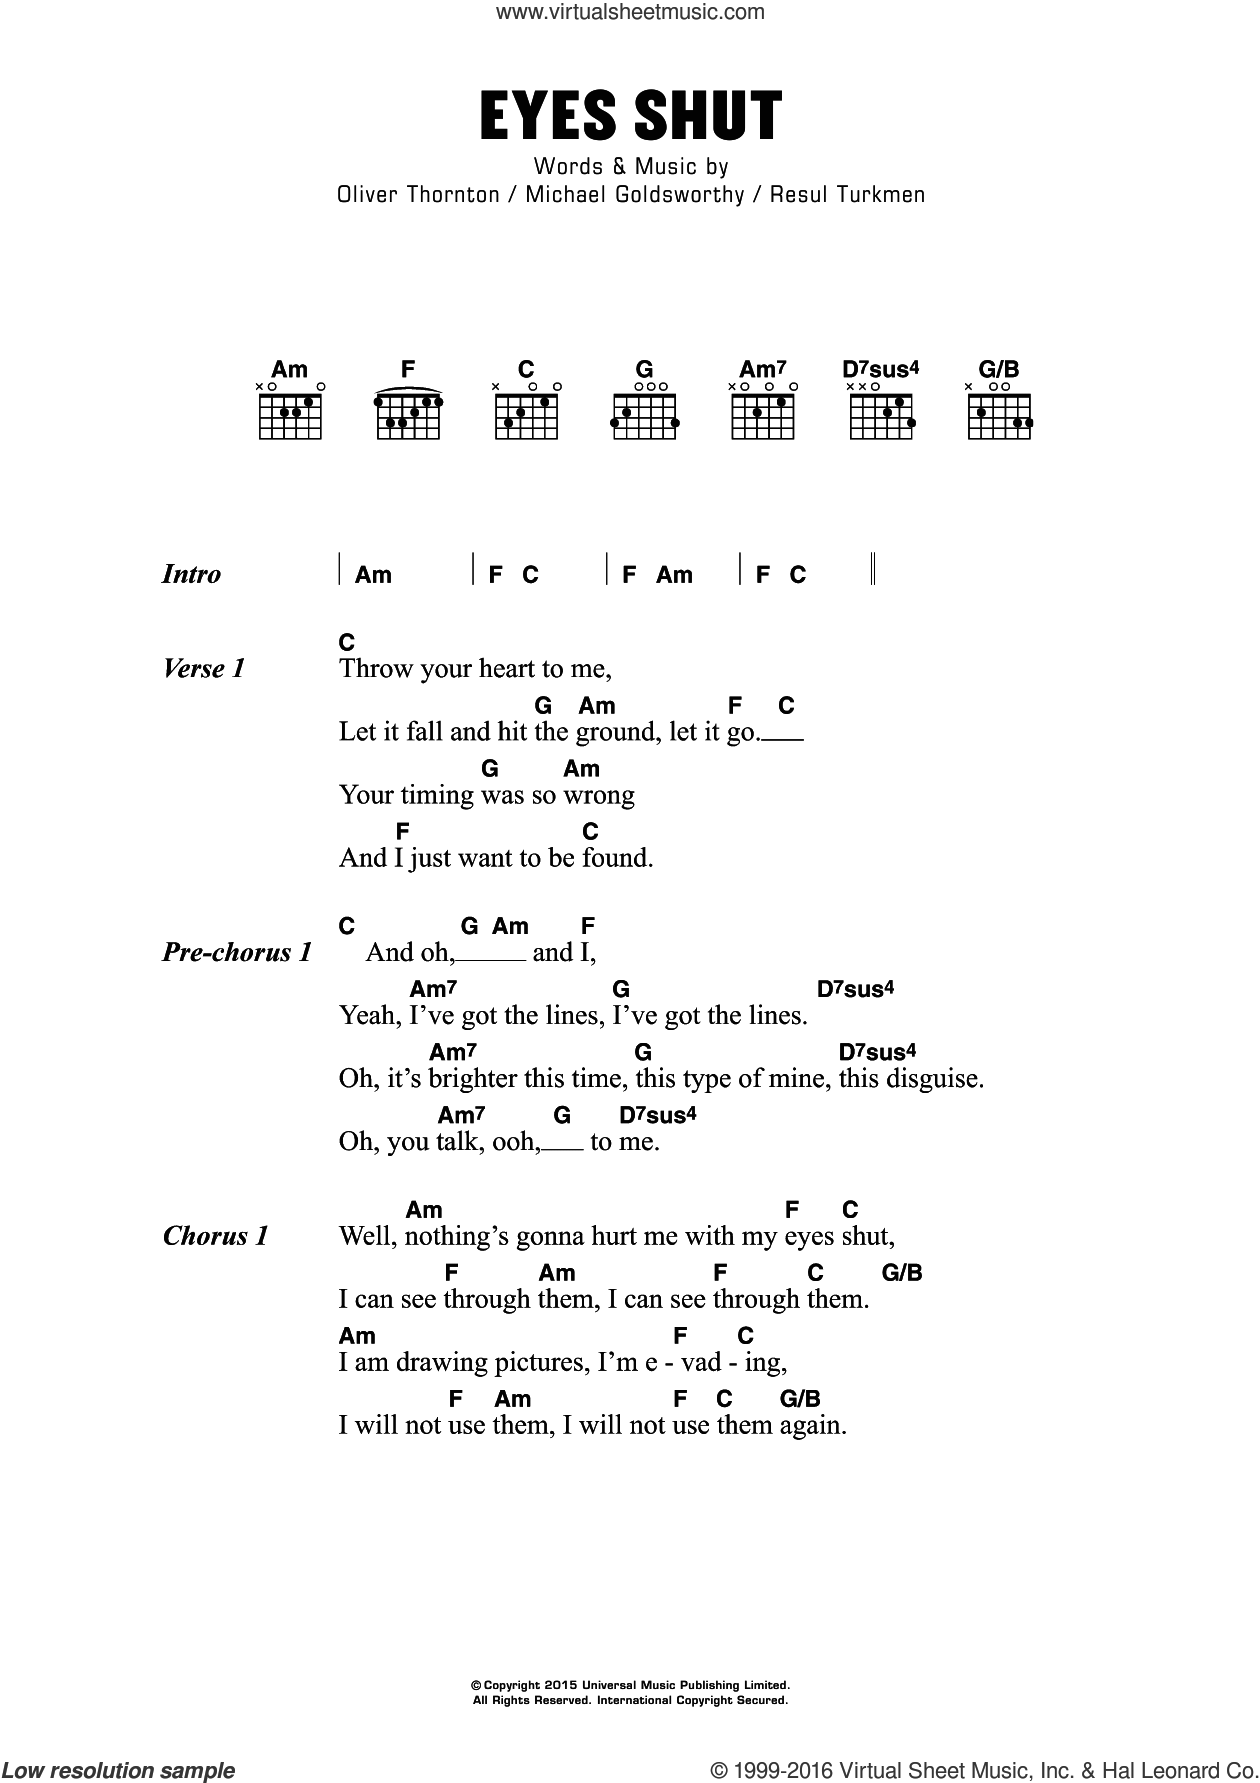 Eyes Shut sheet music for guitar (chords) by Resul Turkmen. Score Image Preview.